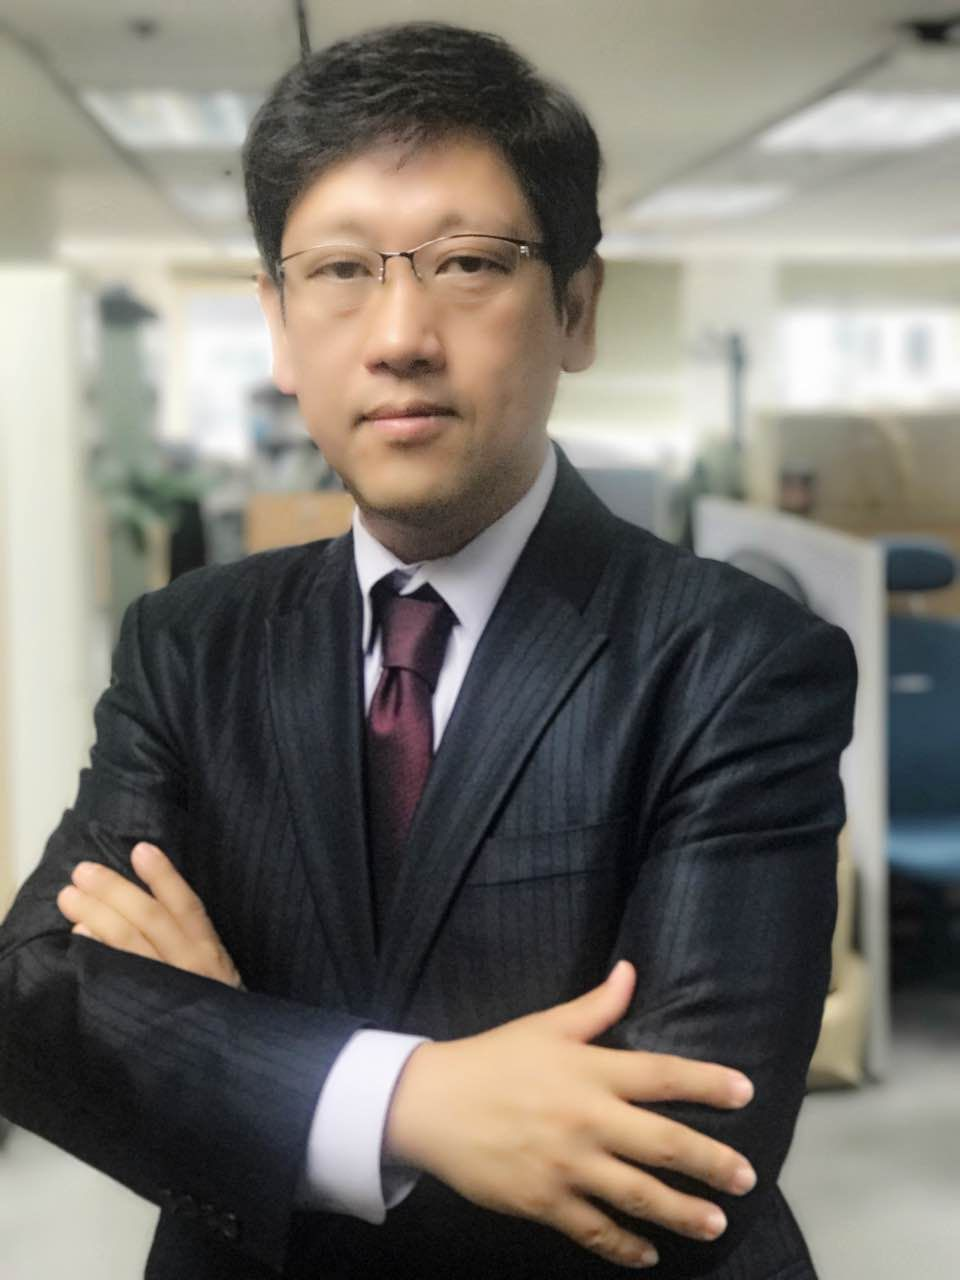 Hwang Jong-duck, CEO and president of One Asia Media